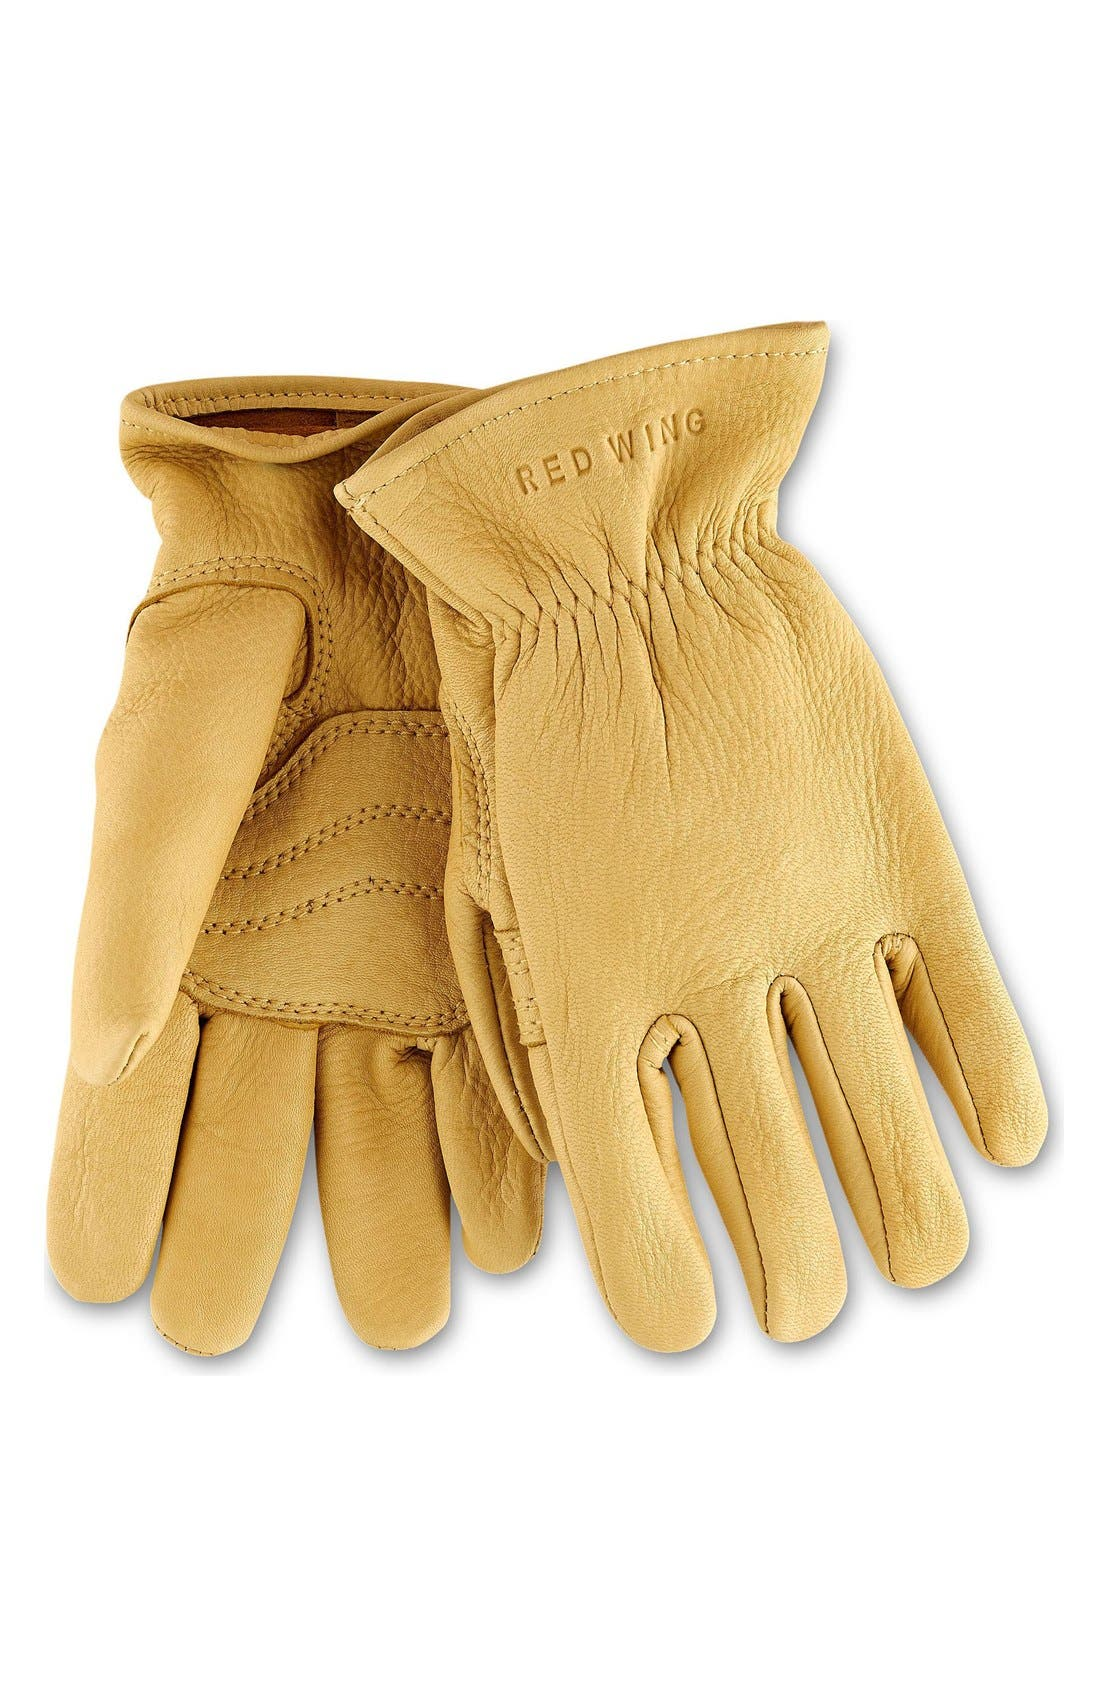 RED WING, Buckskin Leather Gloves, Main thumbnail 1, color, 700